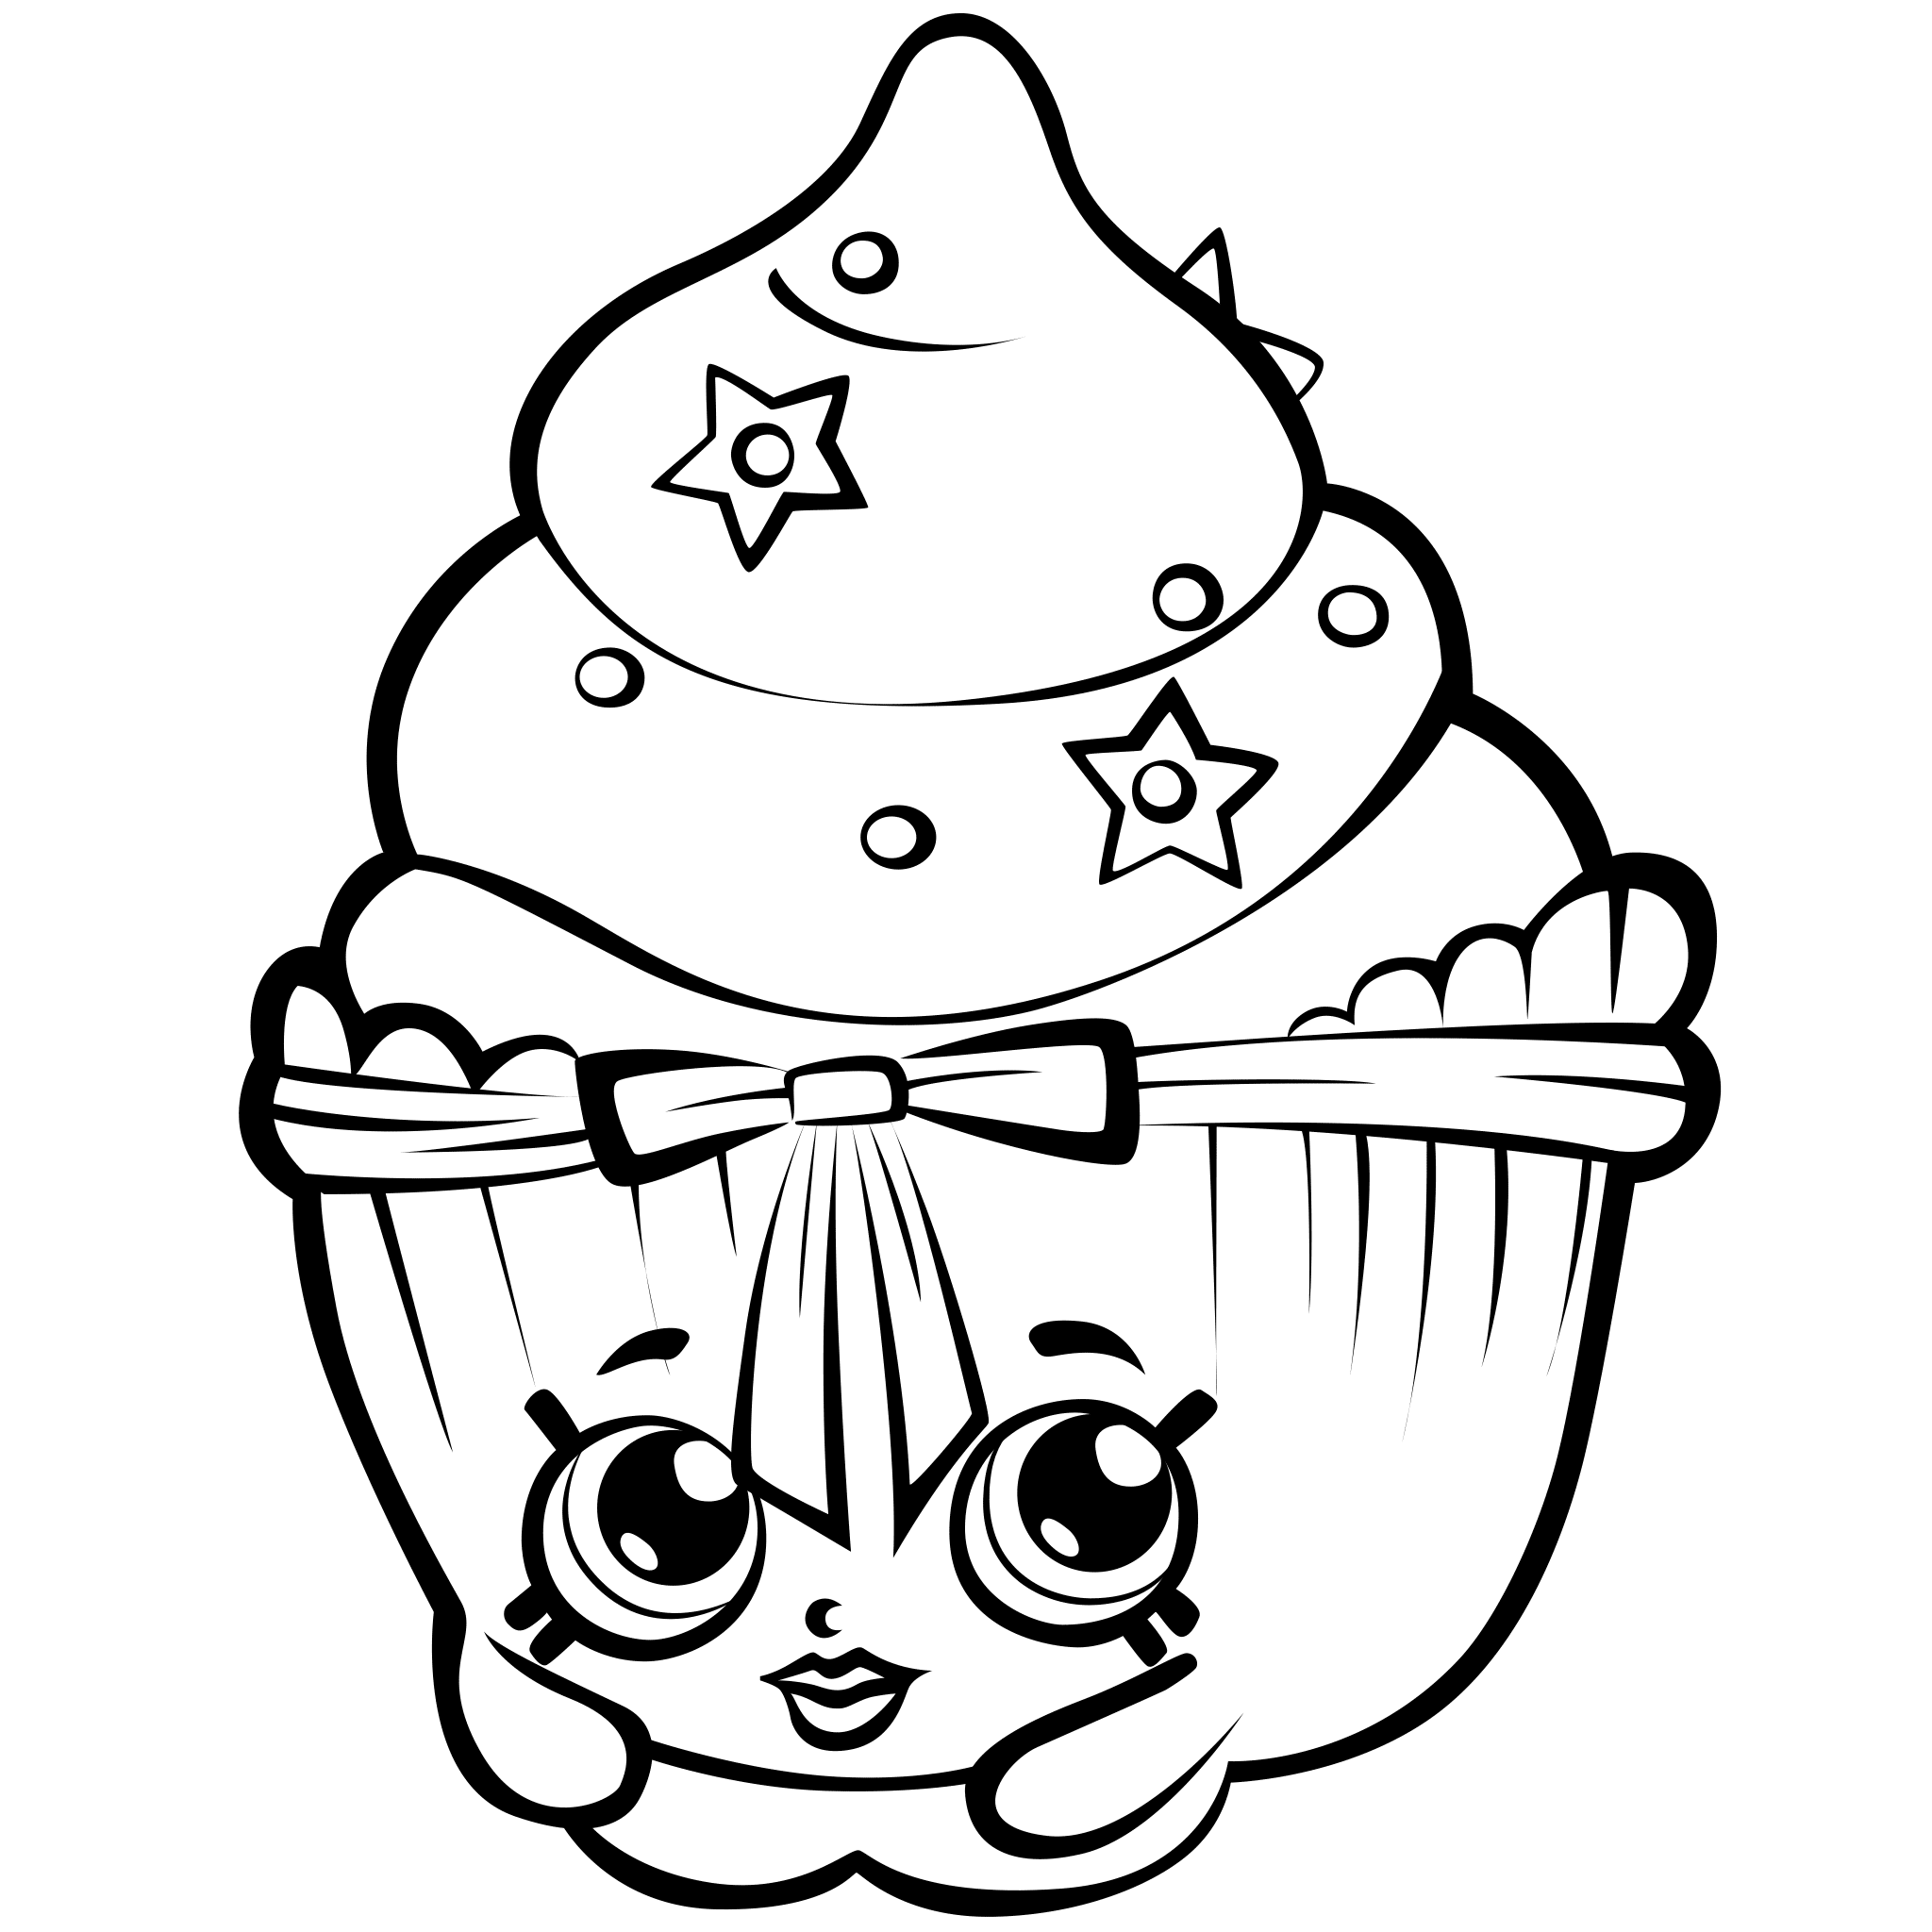 Shopkins Coloring Pages AZ Coloring